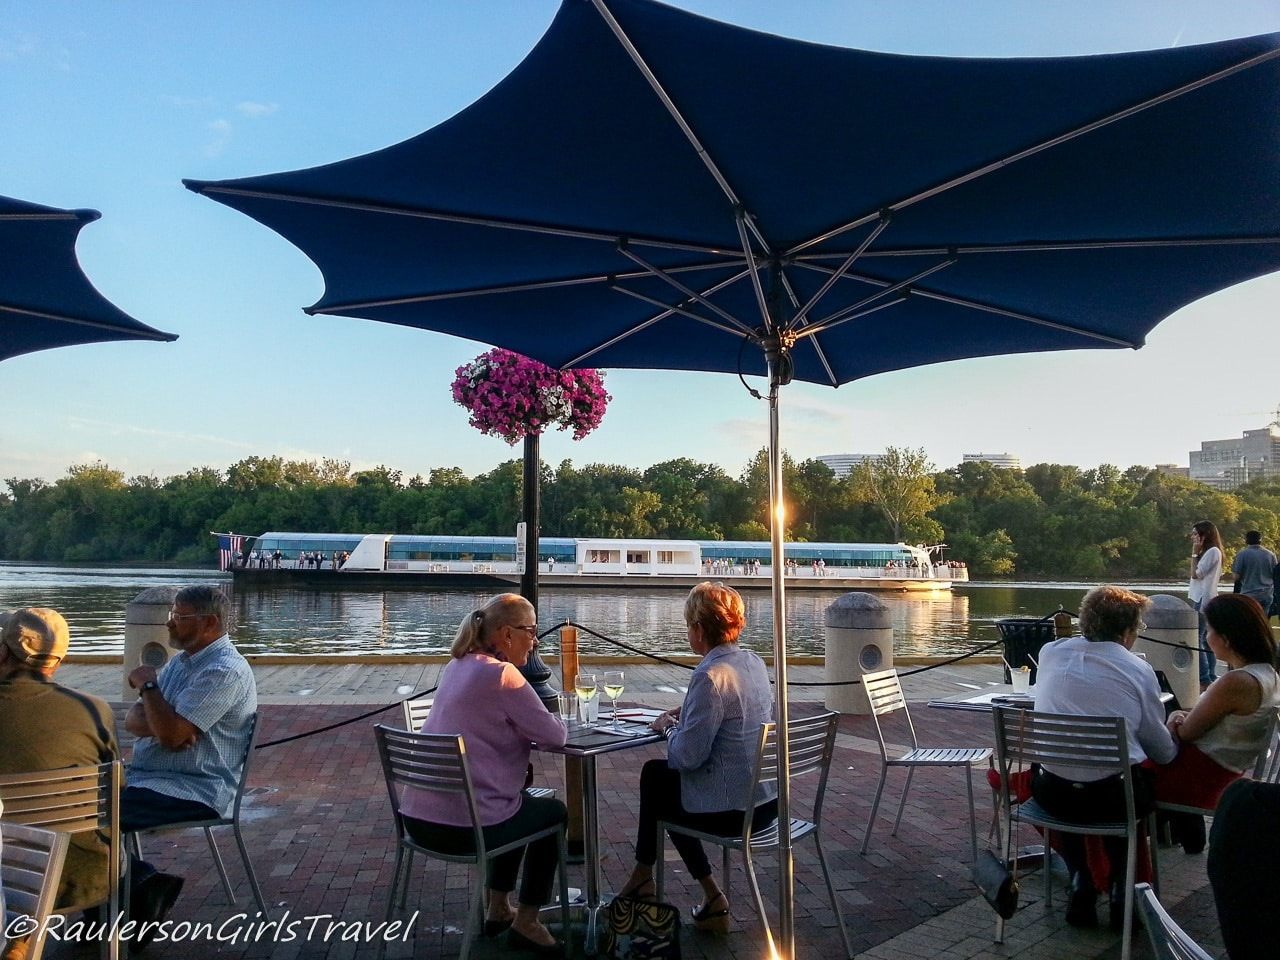 Dining on the banks of the Potomac River